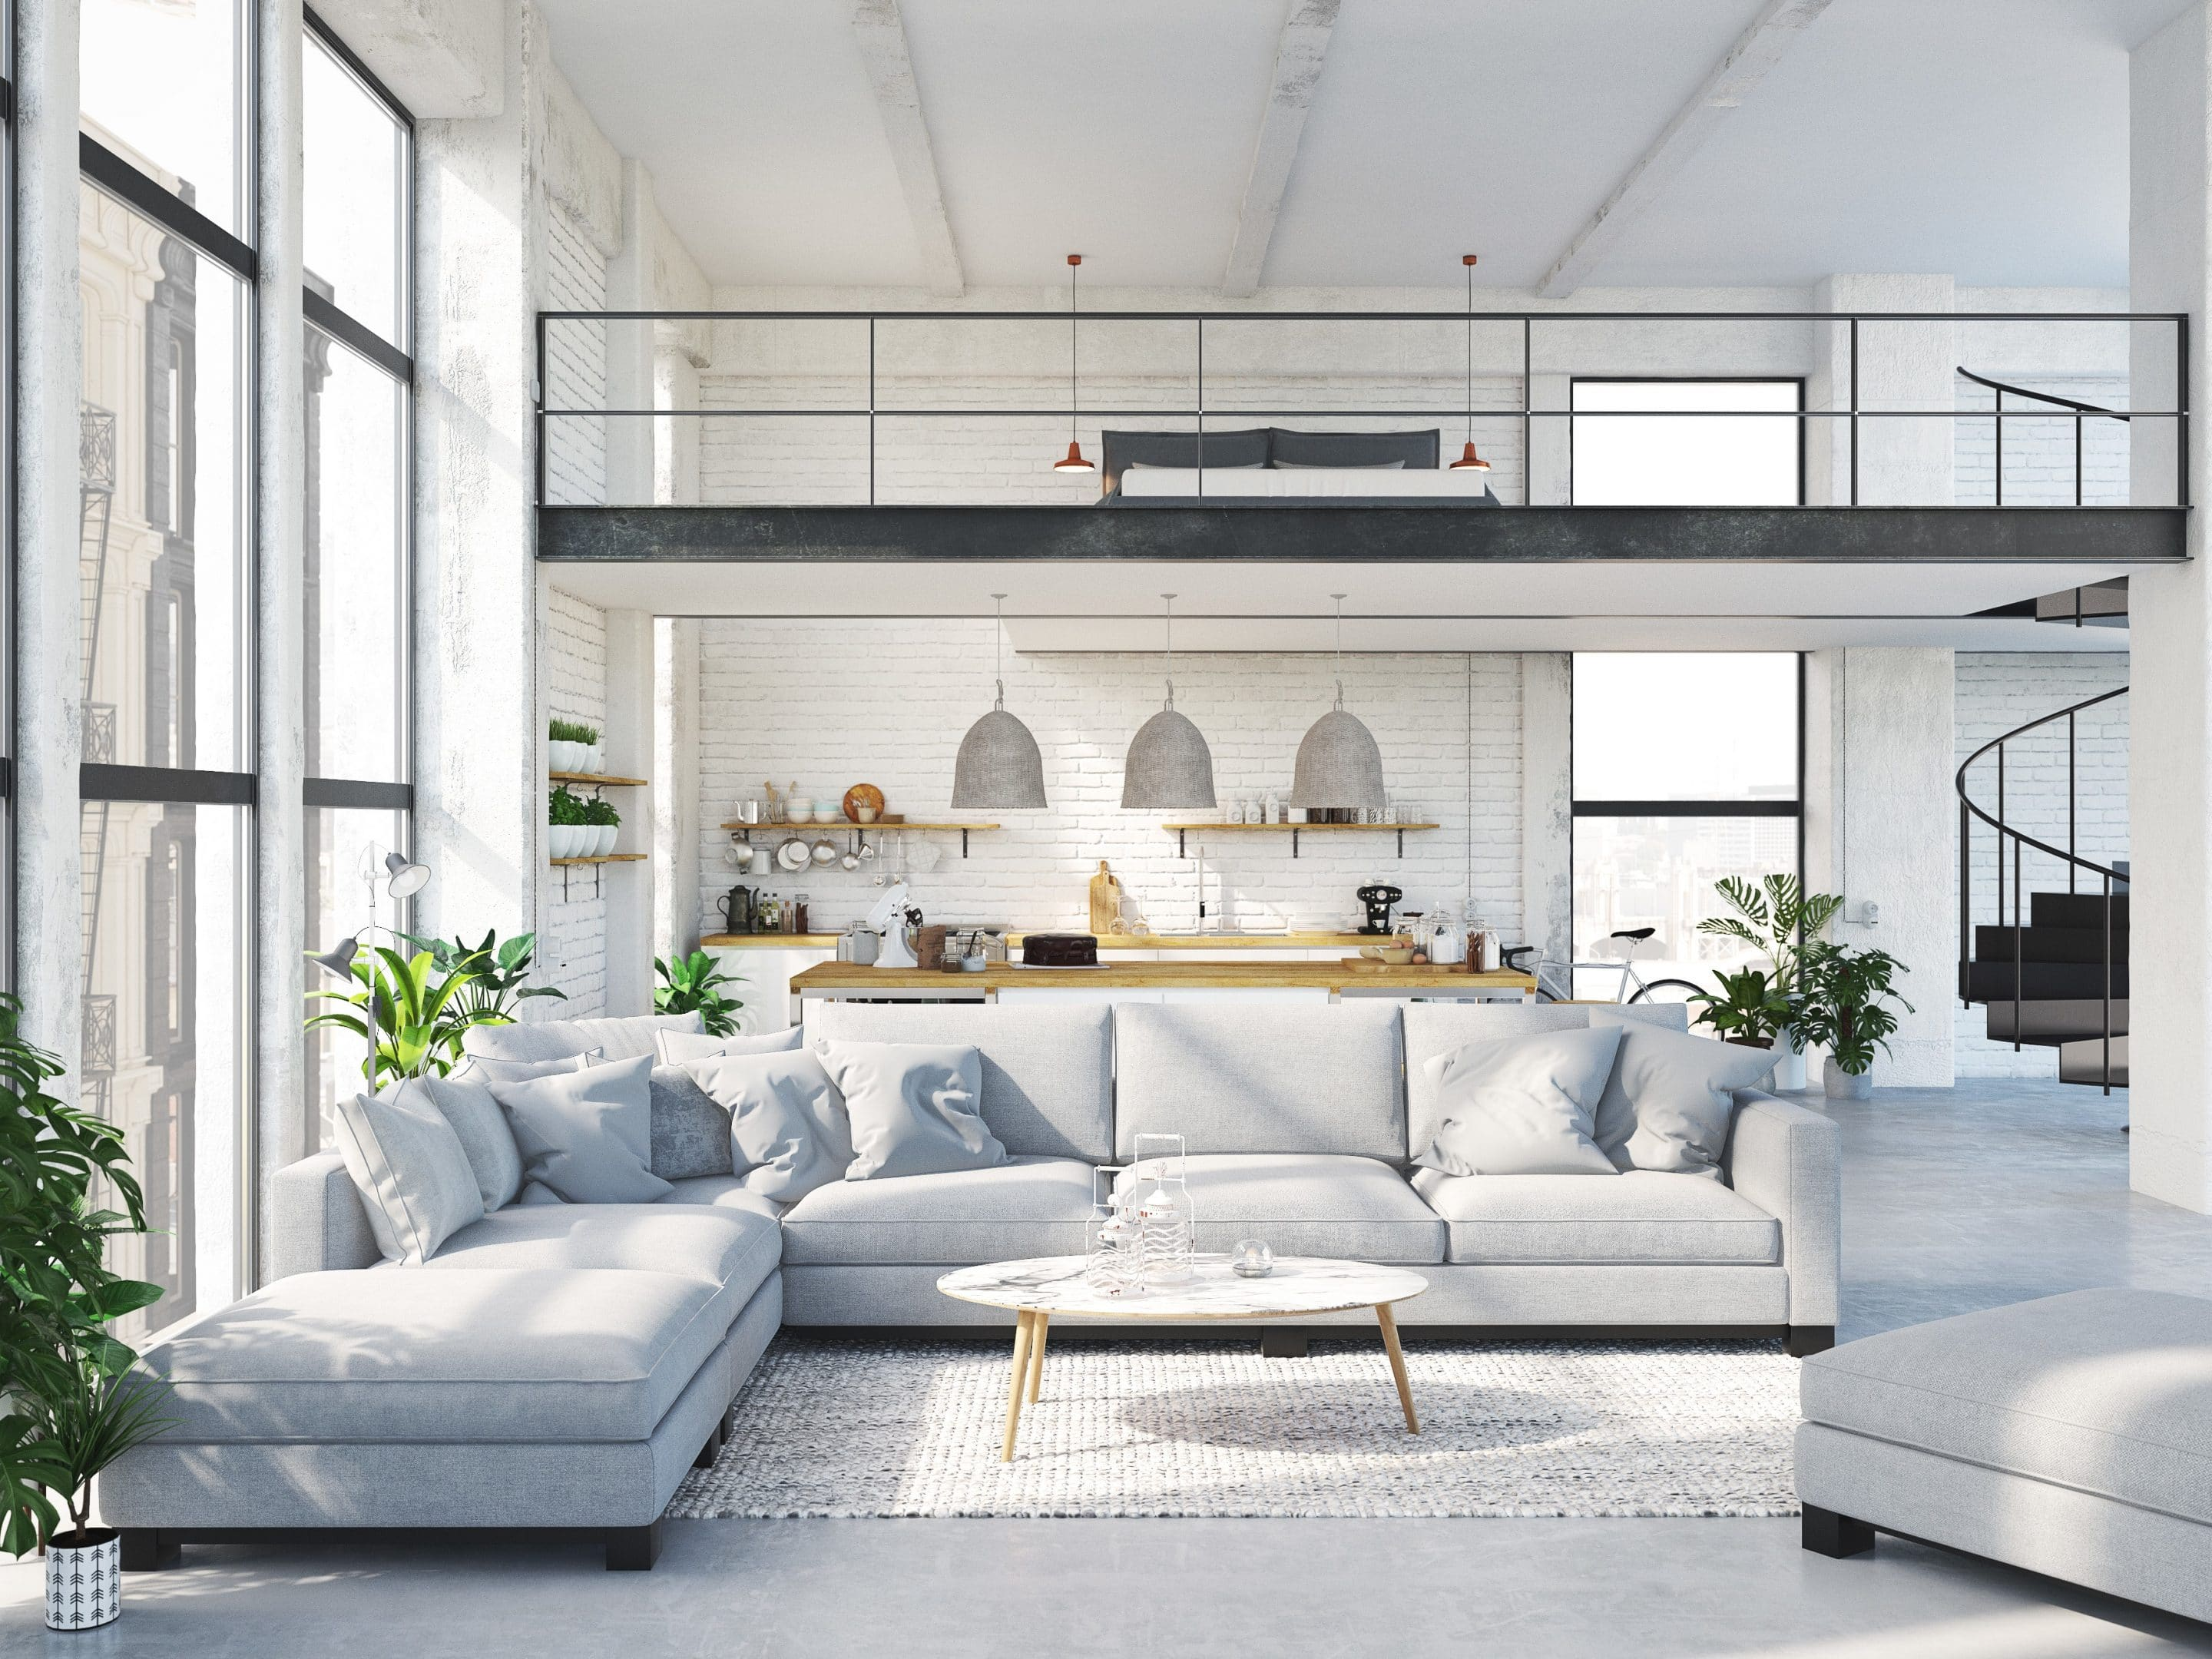 loft apartment with living room and kitchen. Concrete flooring